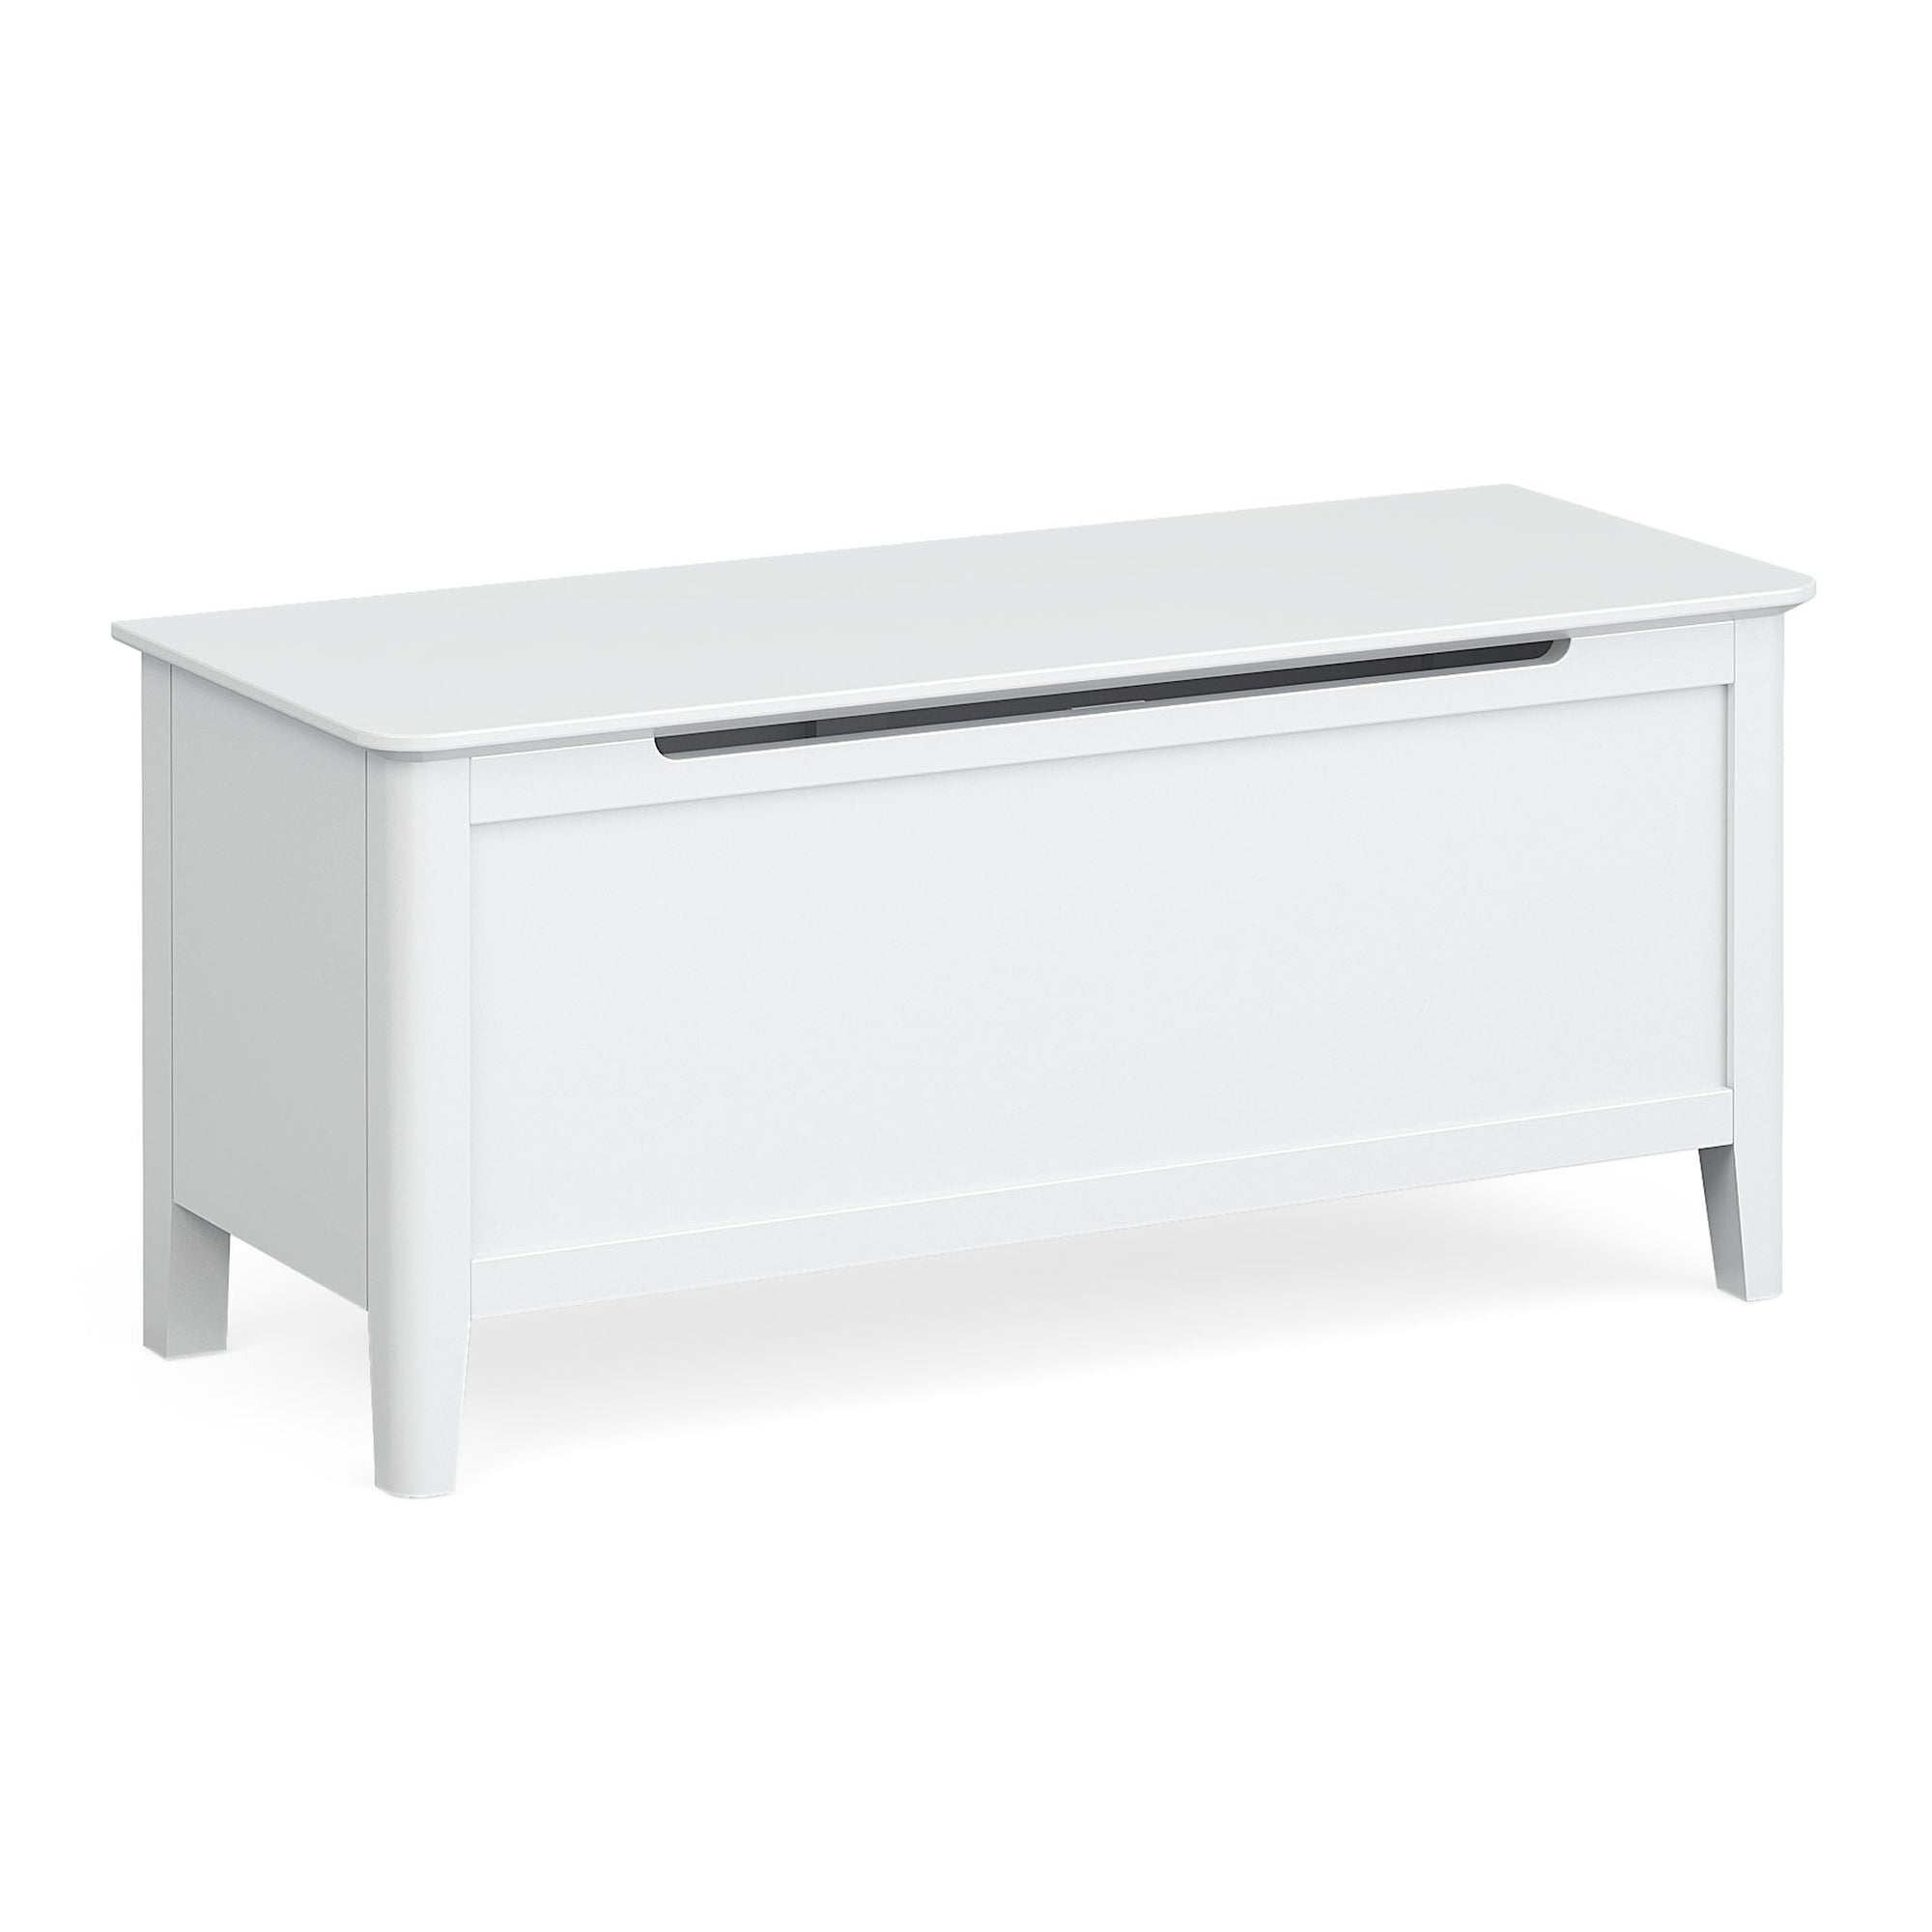 Chester White Blanket Box Ottoman by Roseland Furniture